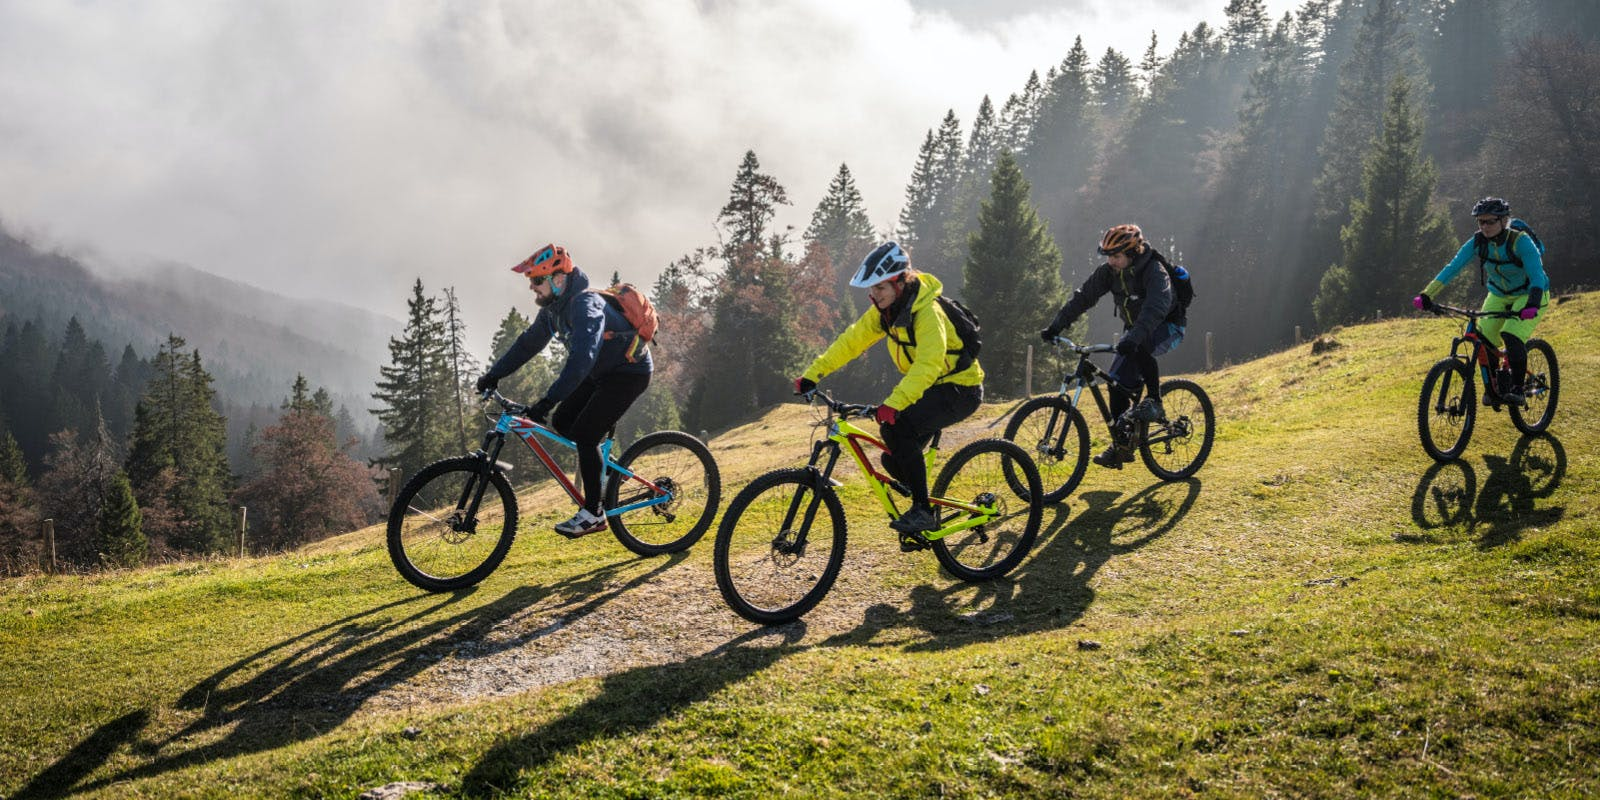 Mountain bikers in the foggy highlands